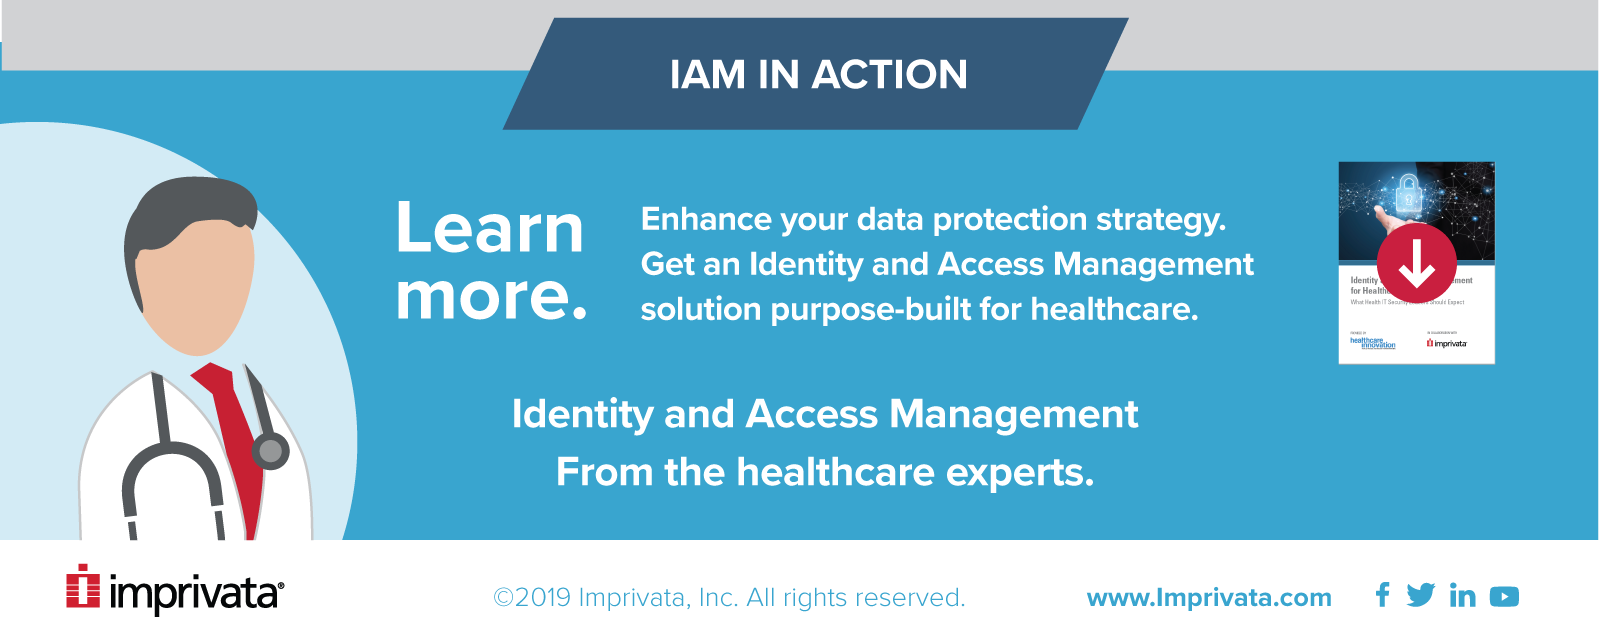 End of automated peace of mind infographic with a call to download a report on IAM